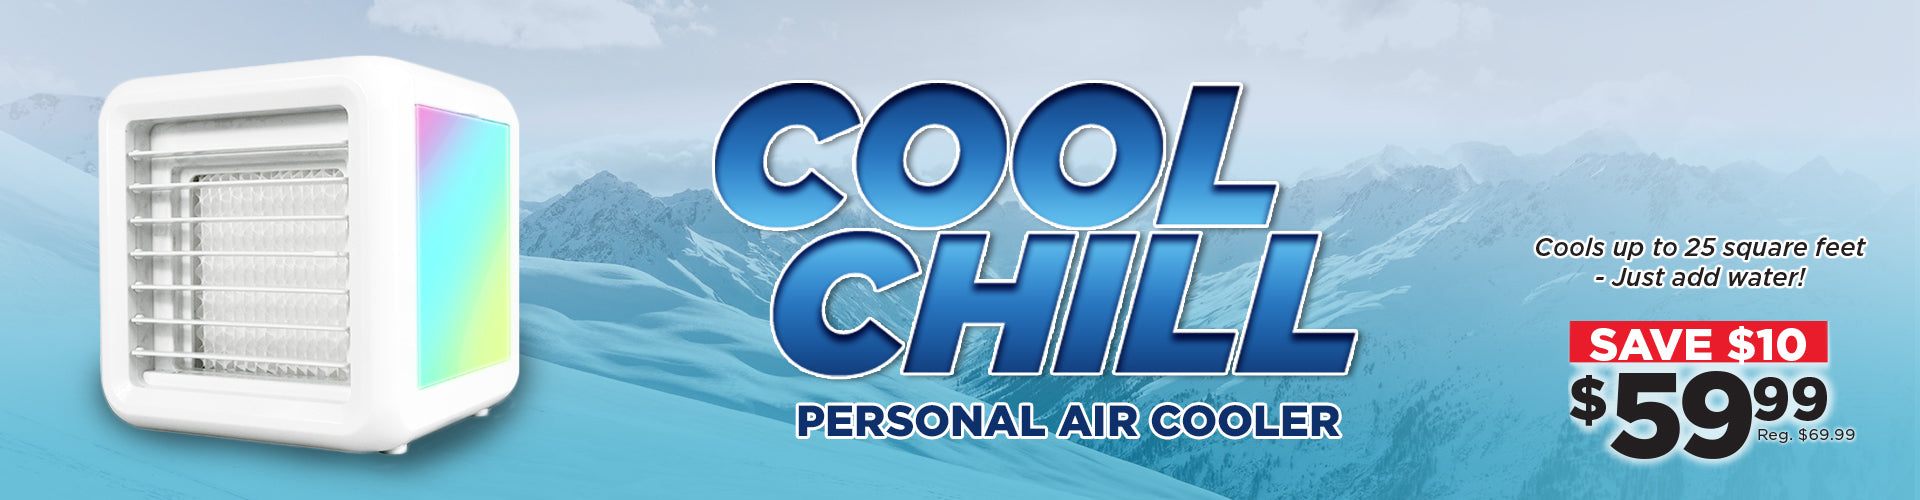 Stay Cool This Summer With the Cool Chill Personal Air Conditioner